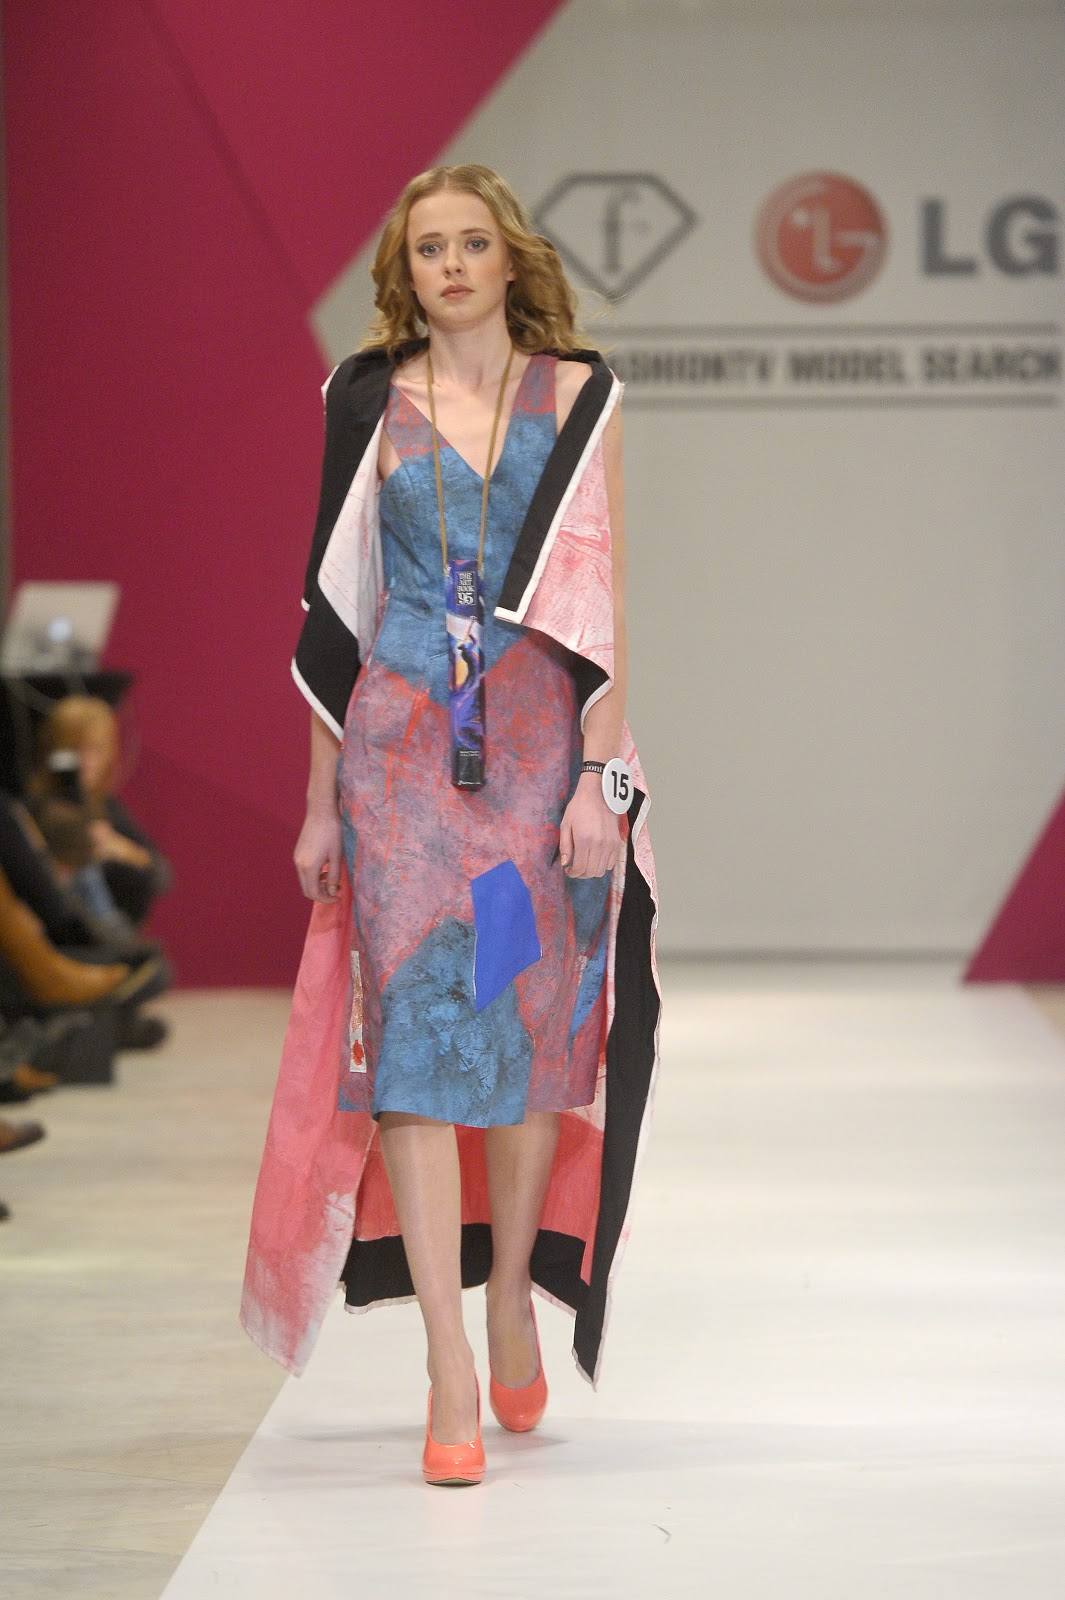 akpa20130130_lg_fashion_tv_2248.jpg